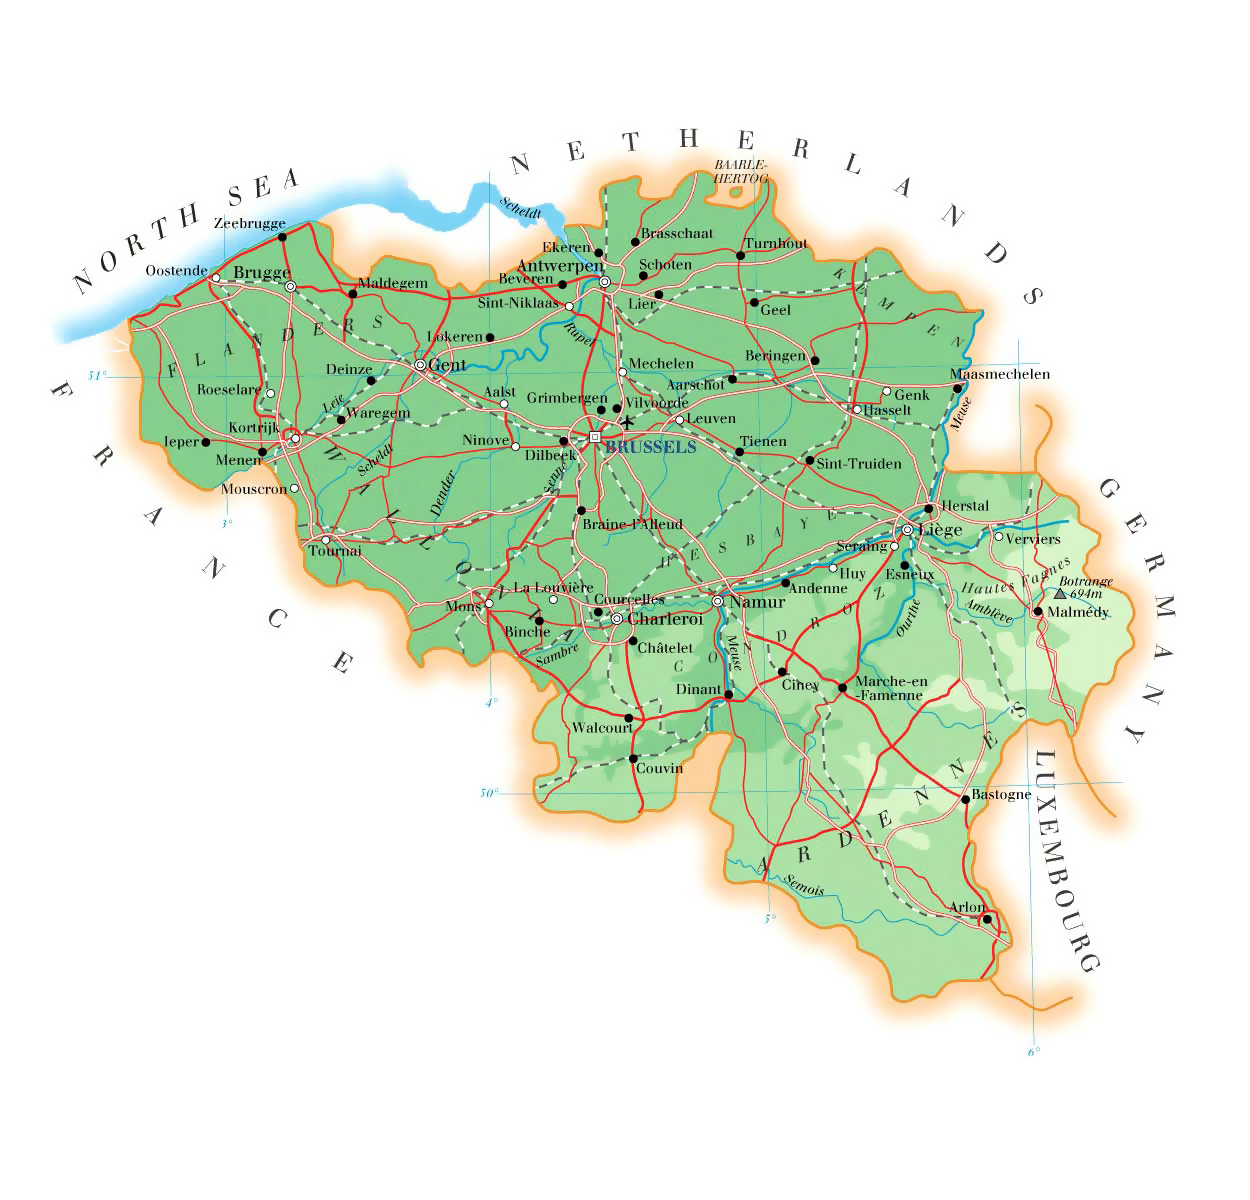 Detailed elevation map of Belgium with roads, cities and airports ...